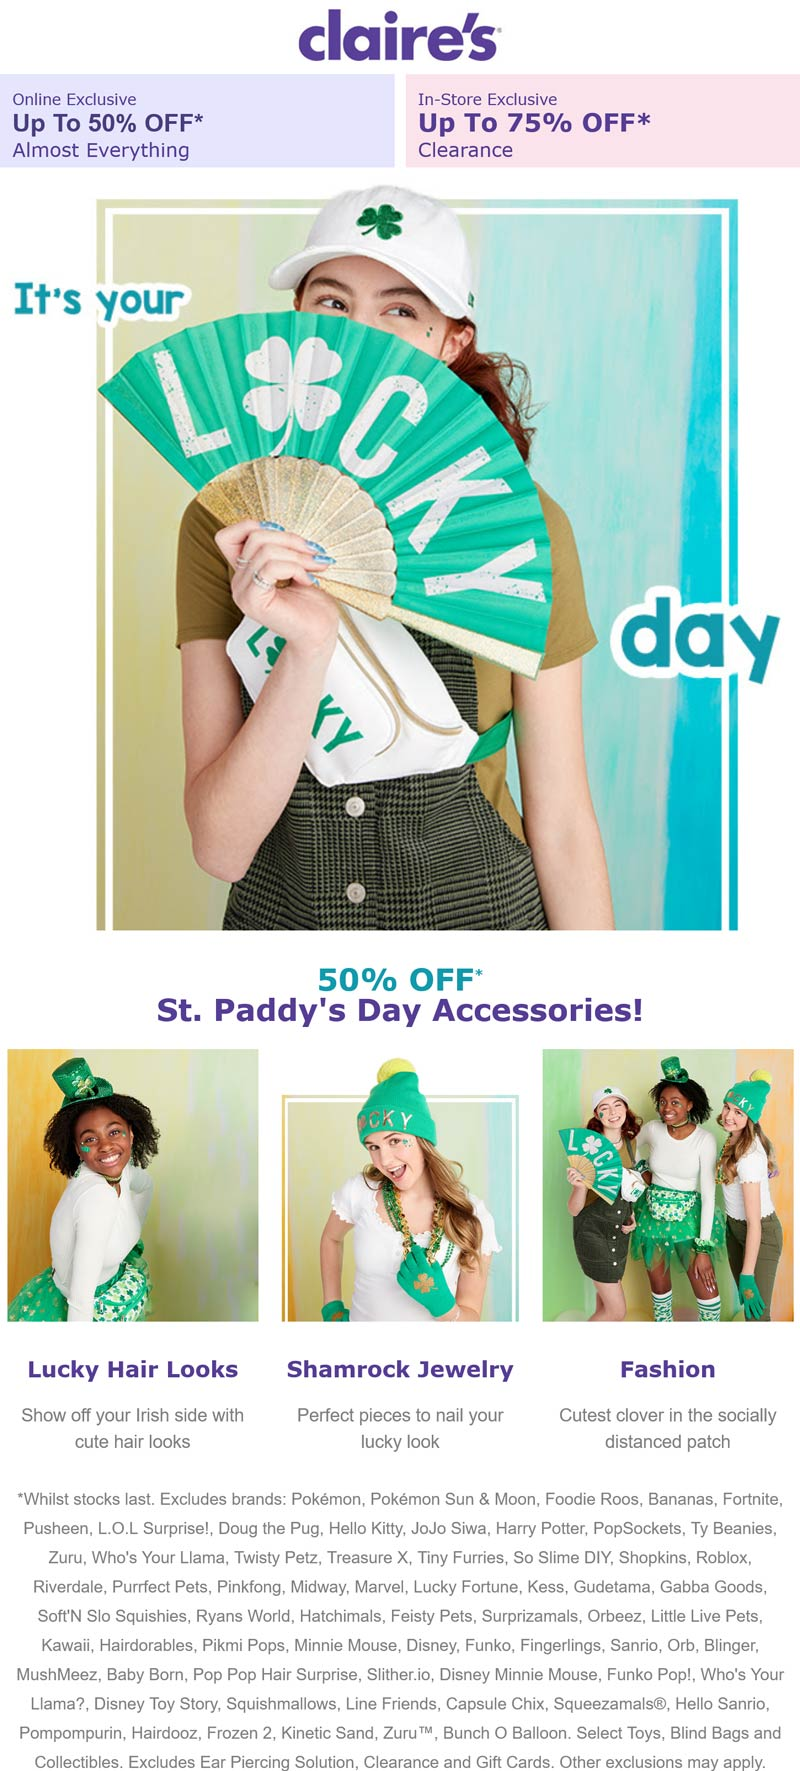 Claires stores Coupon  50% off St. Paddys day accessories & more at Claires #claires